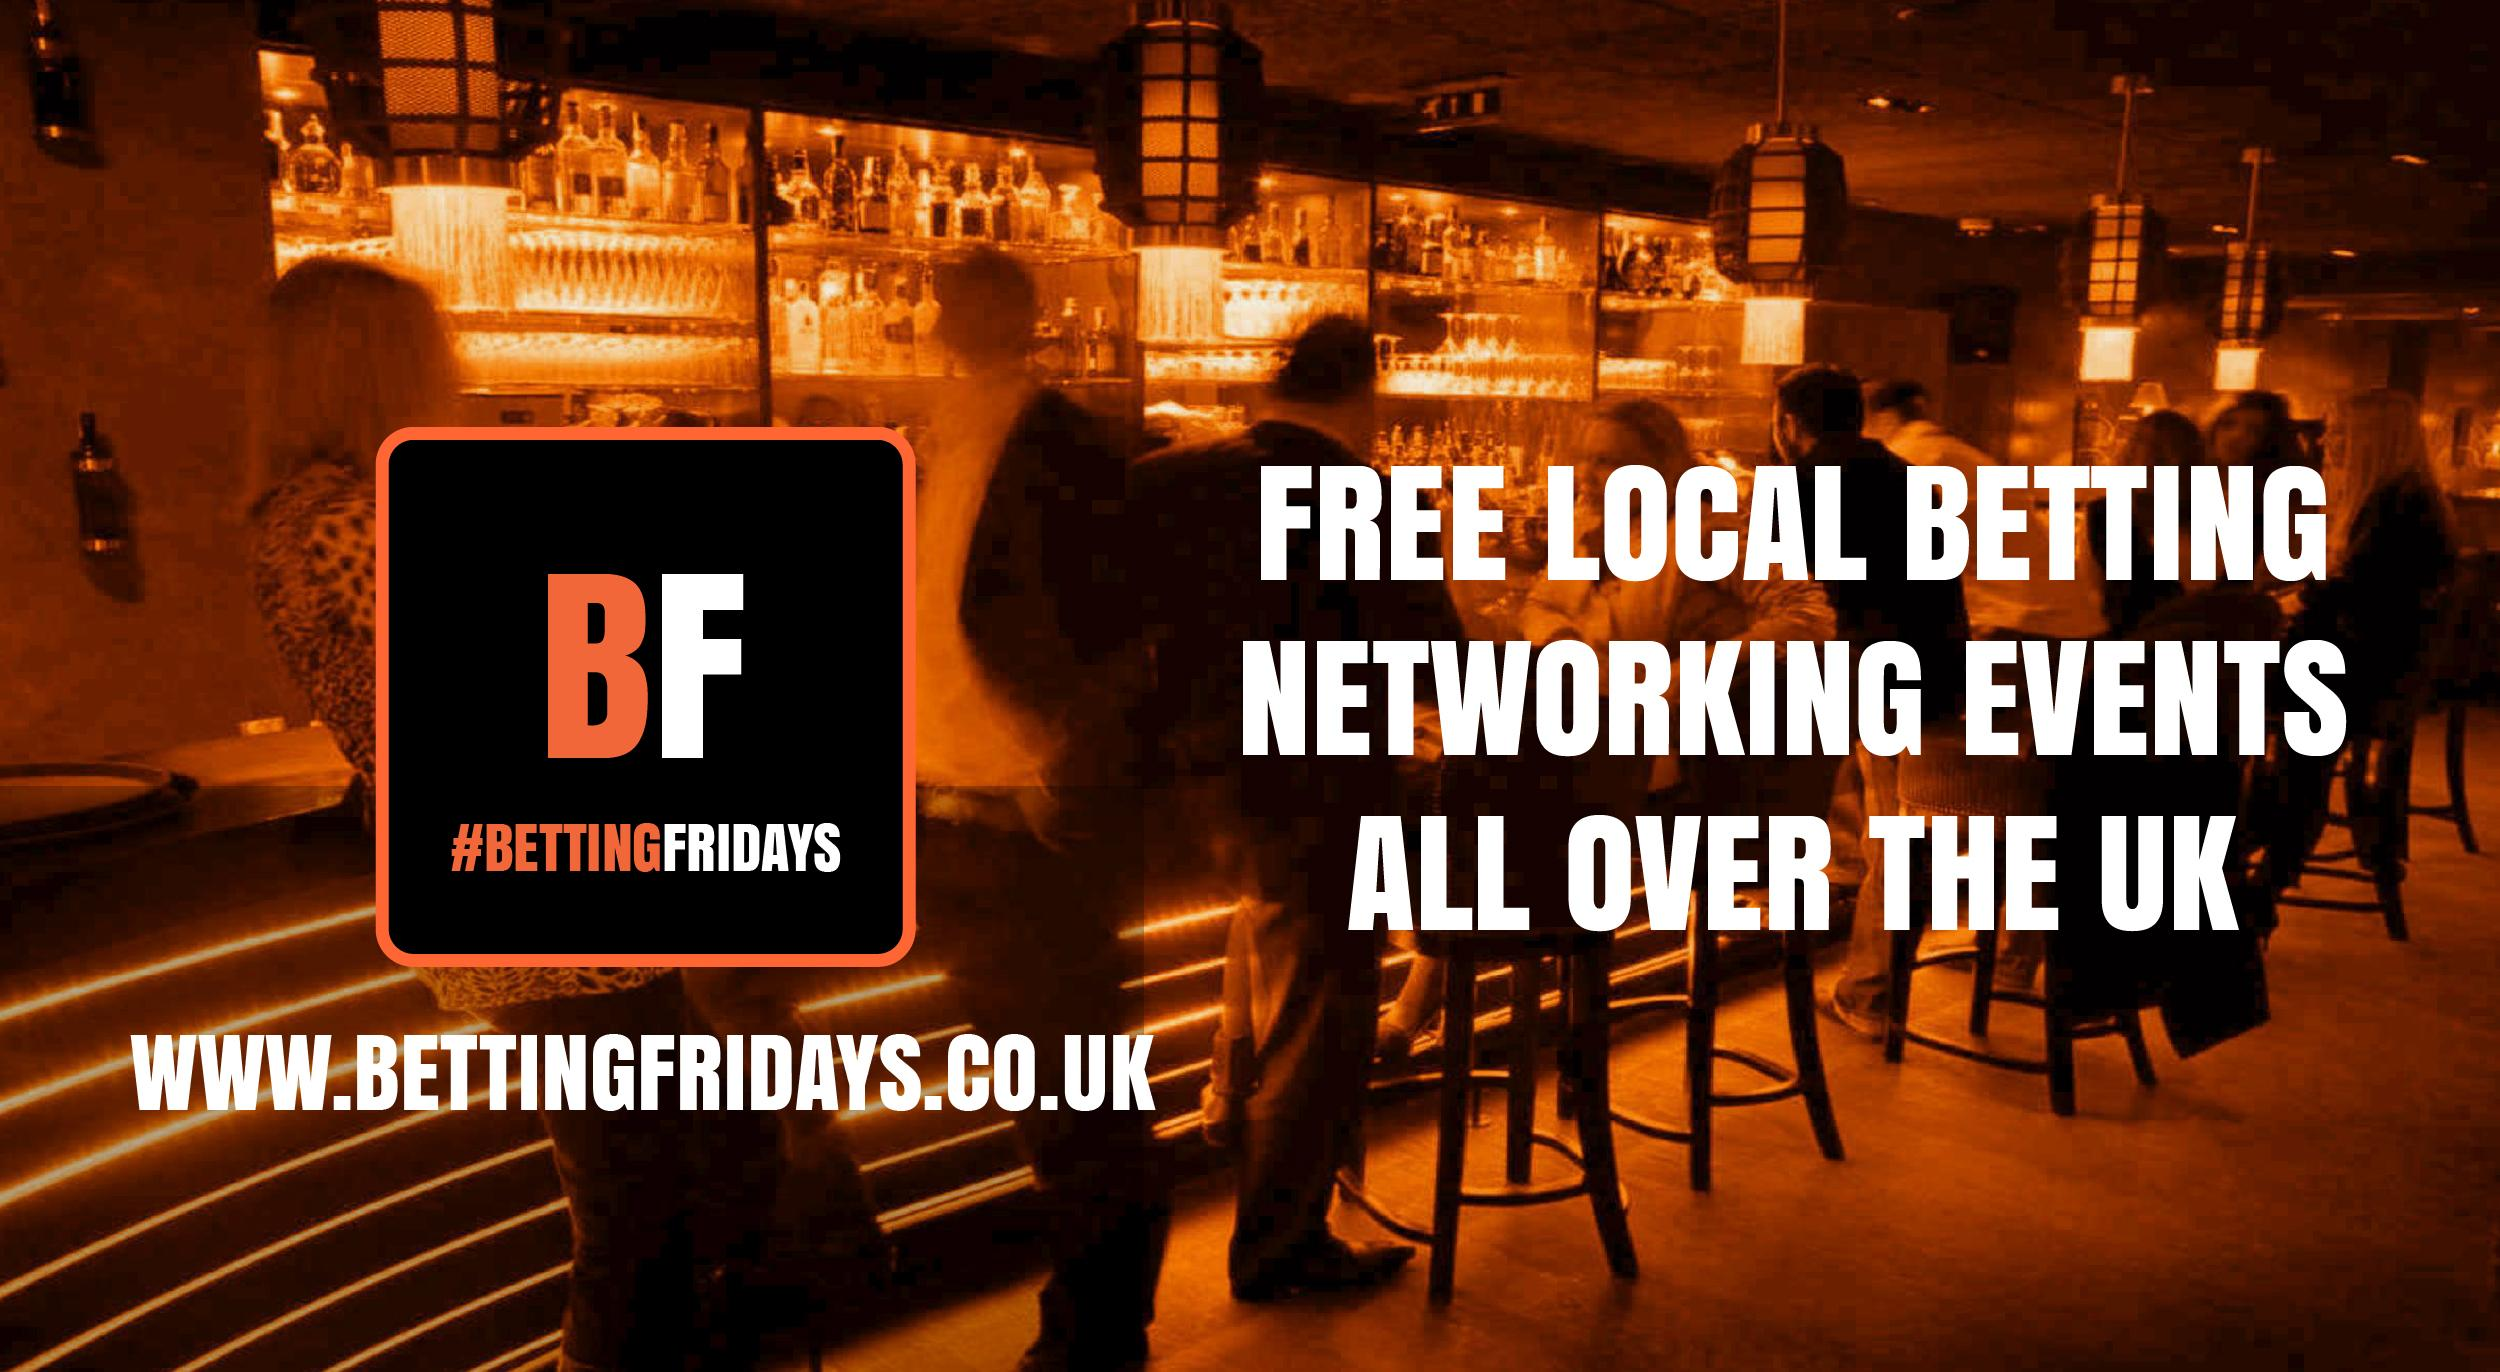 Betting Fridays! Free betting networking event in Ashton-in-Makerfield